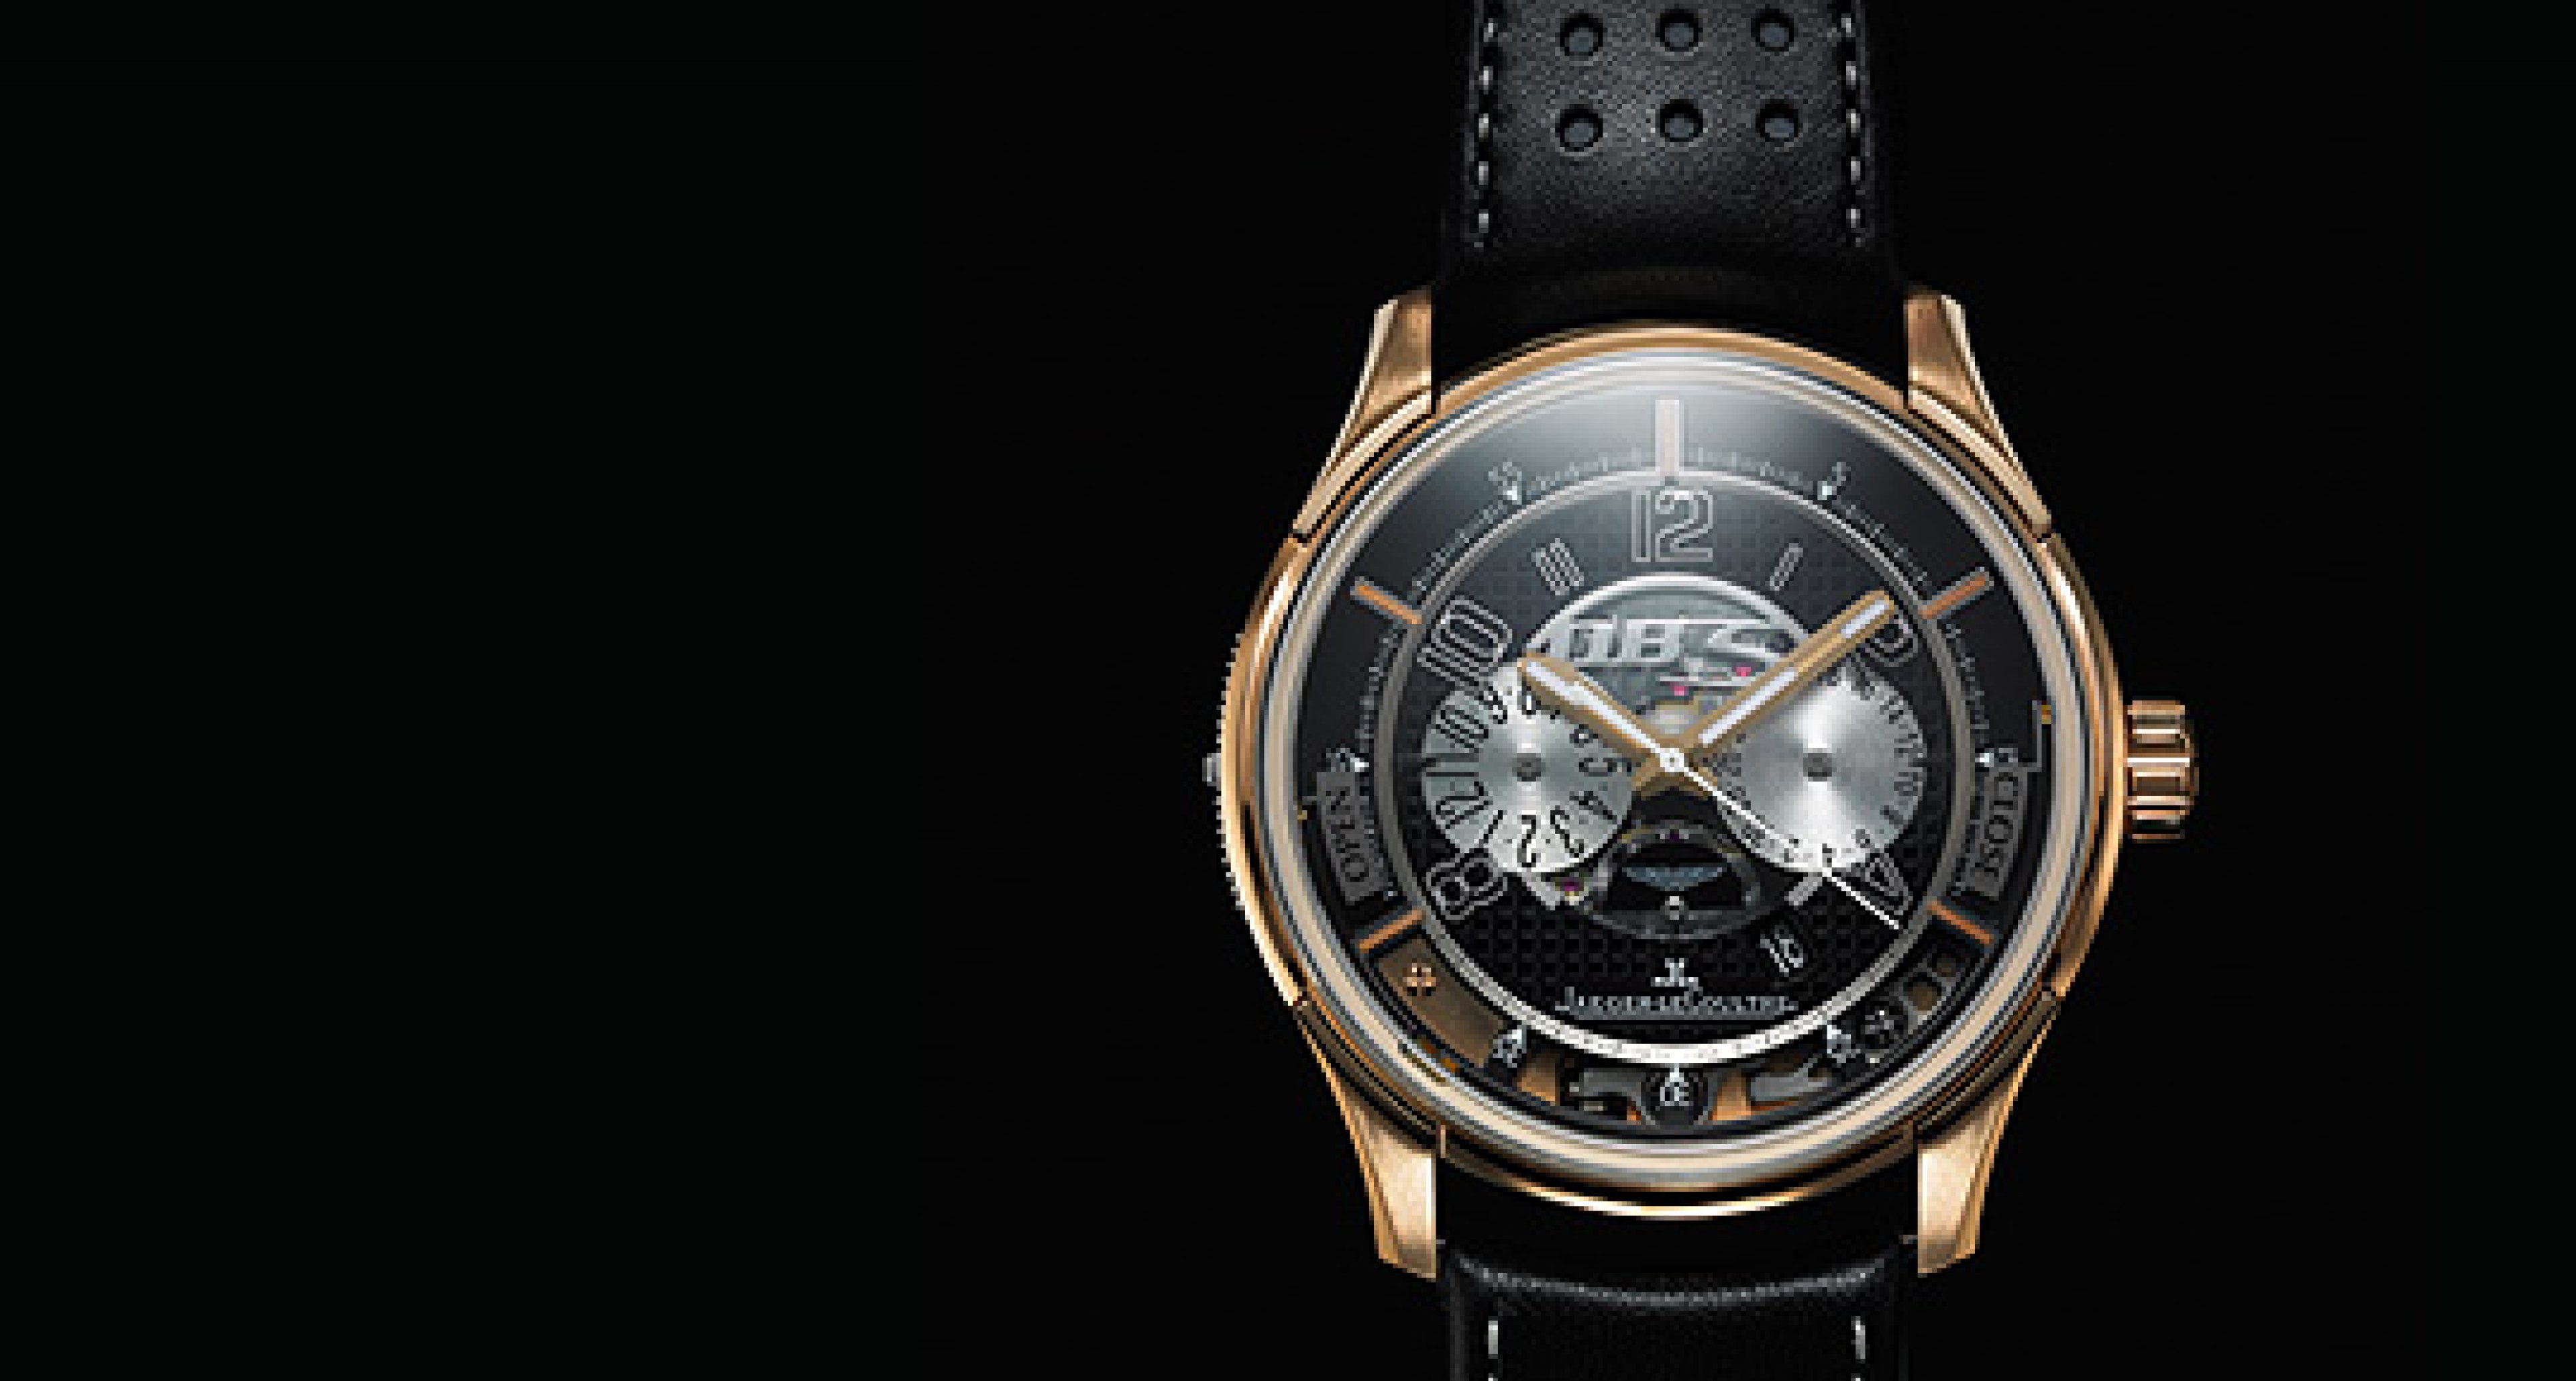 Aston Martin and Jaeger LeCoultre